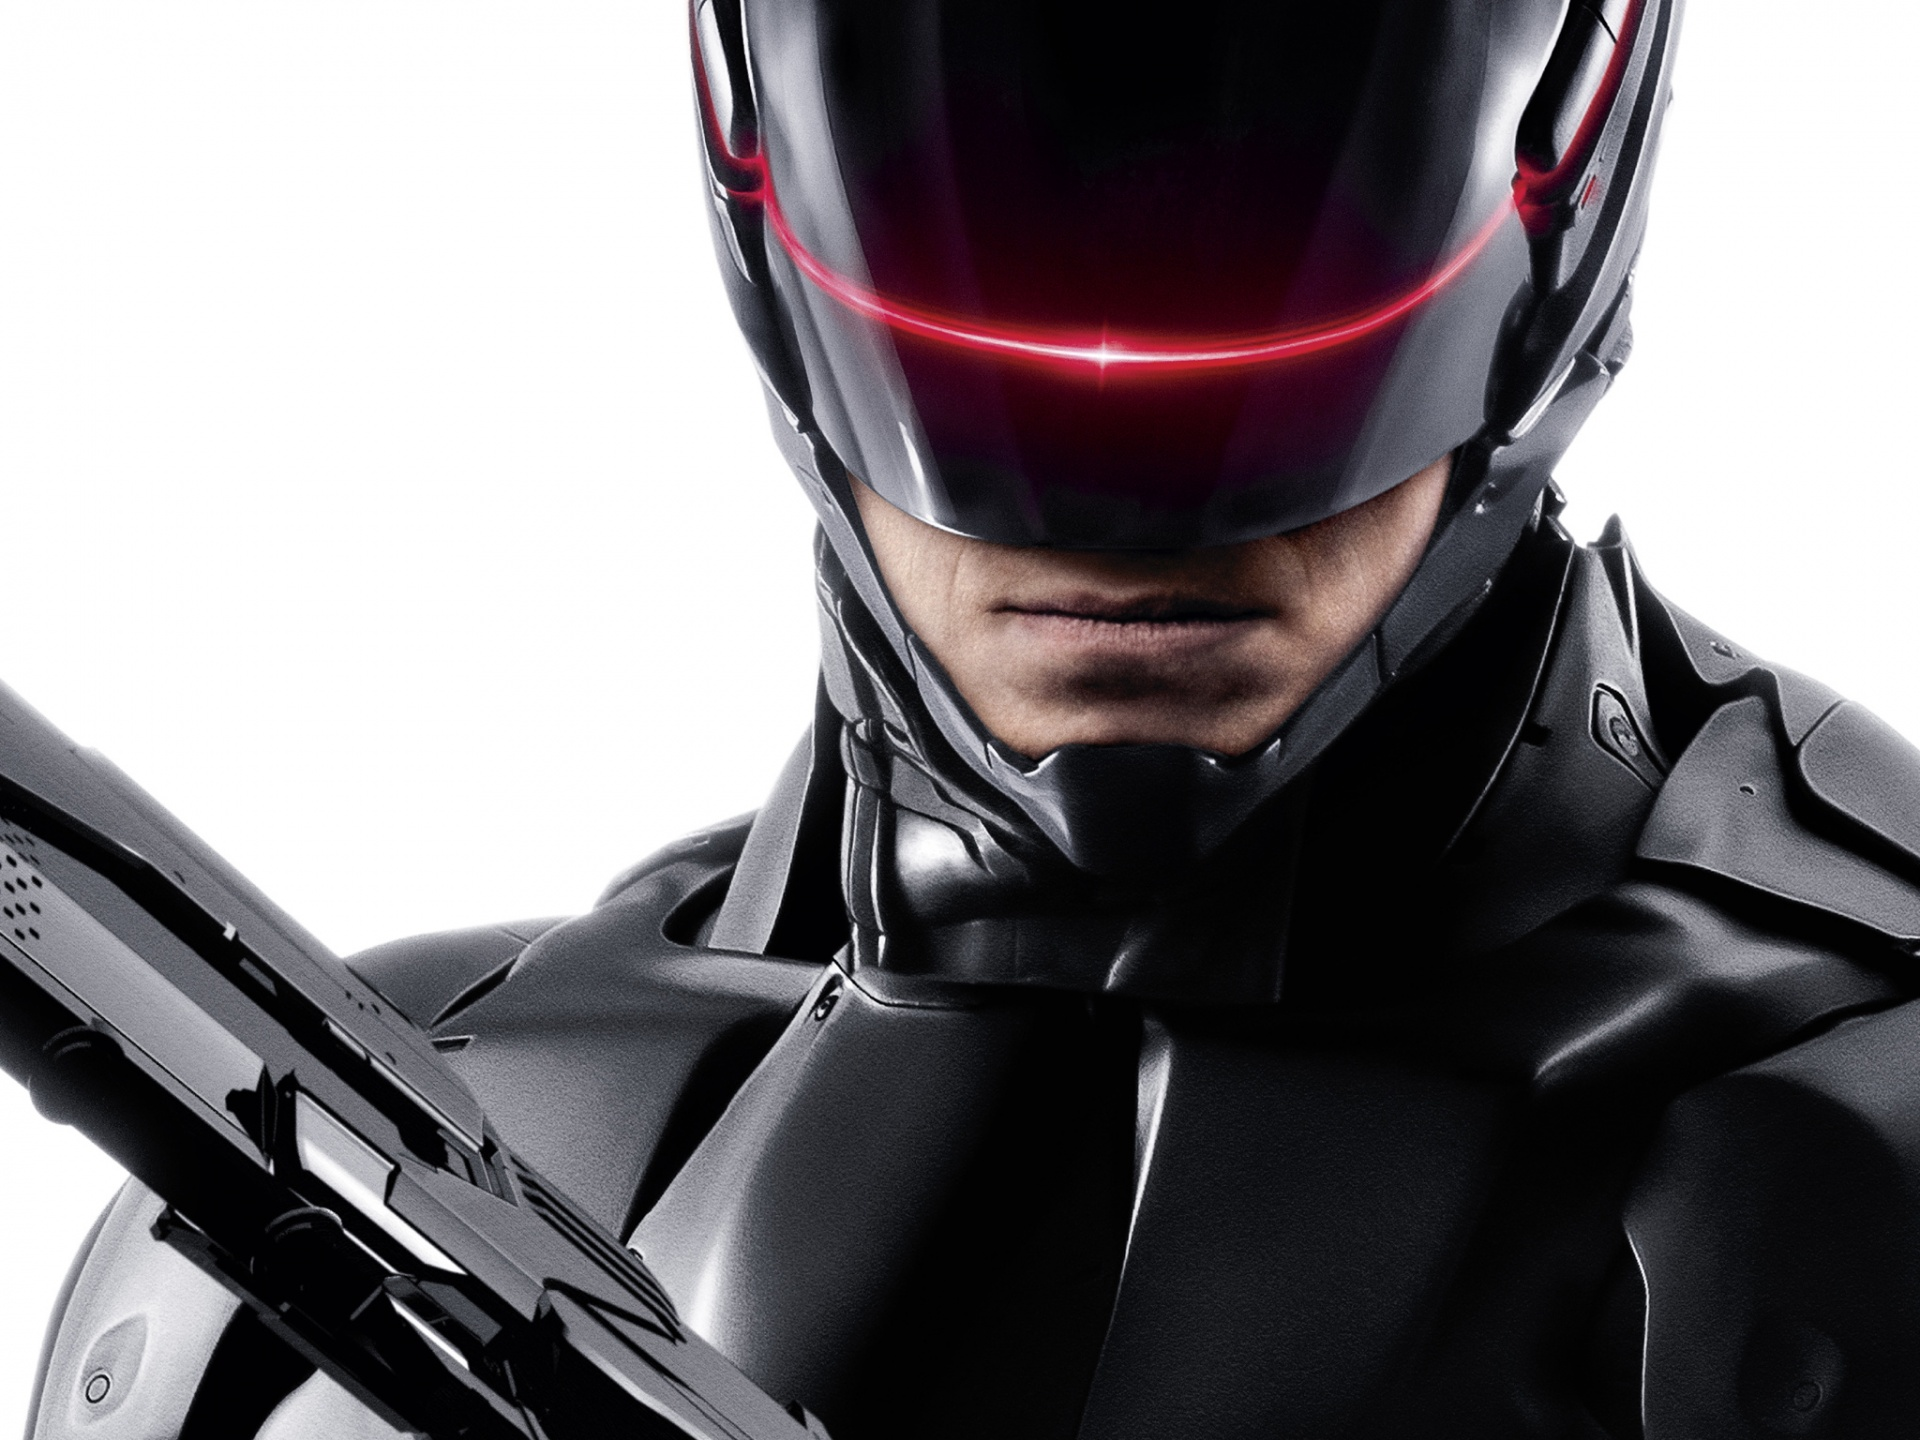 robocop_2014_movie-1920x1440